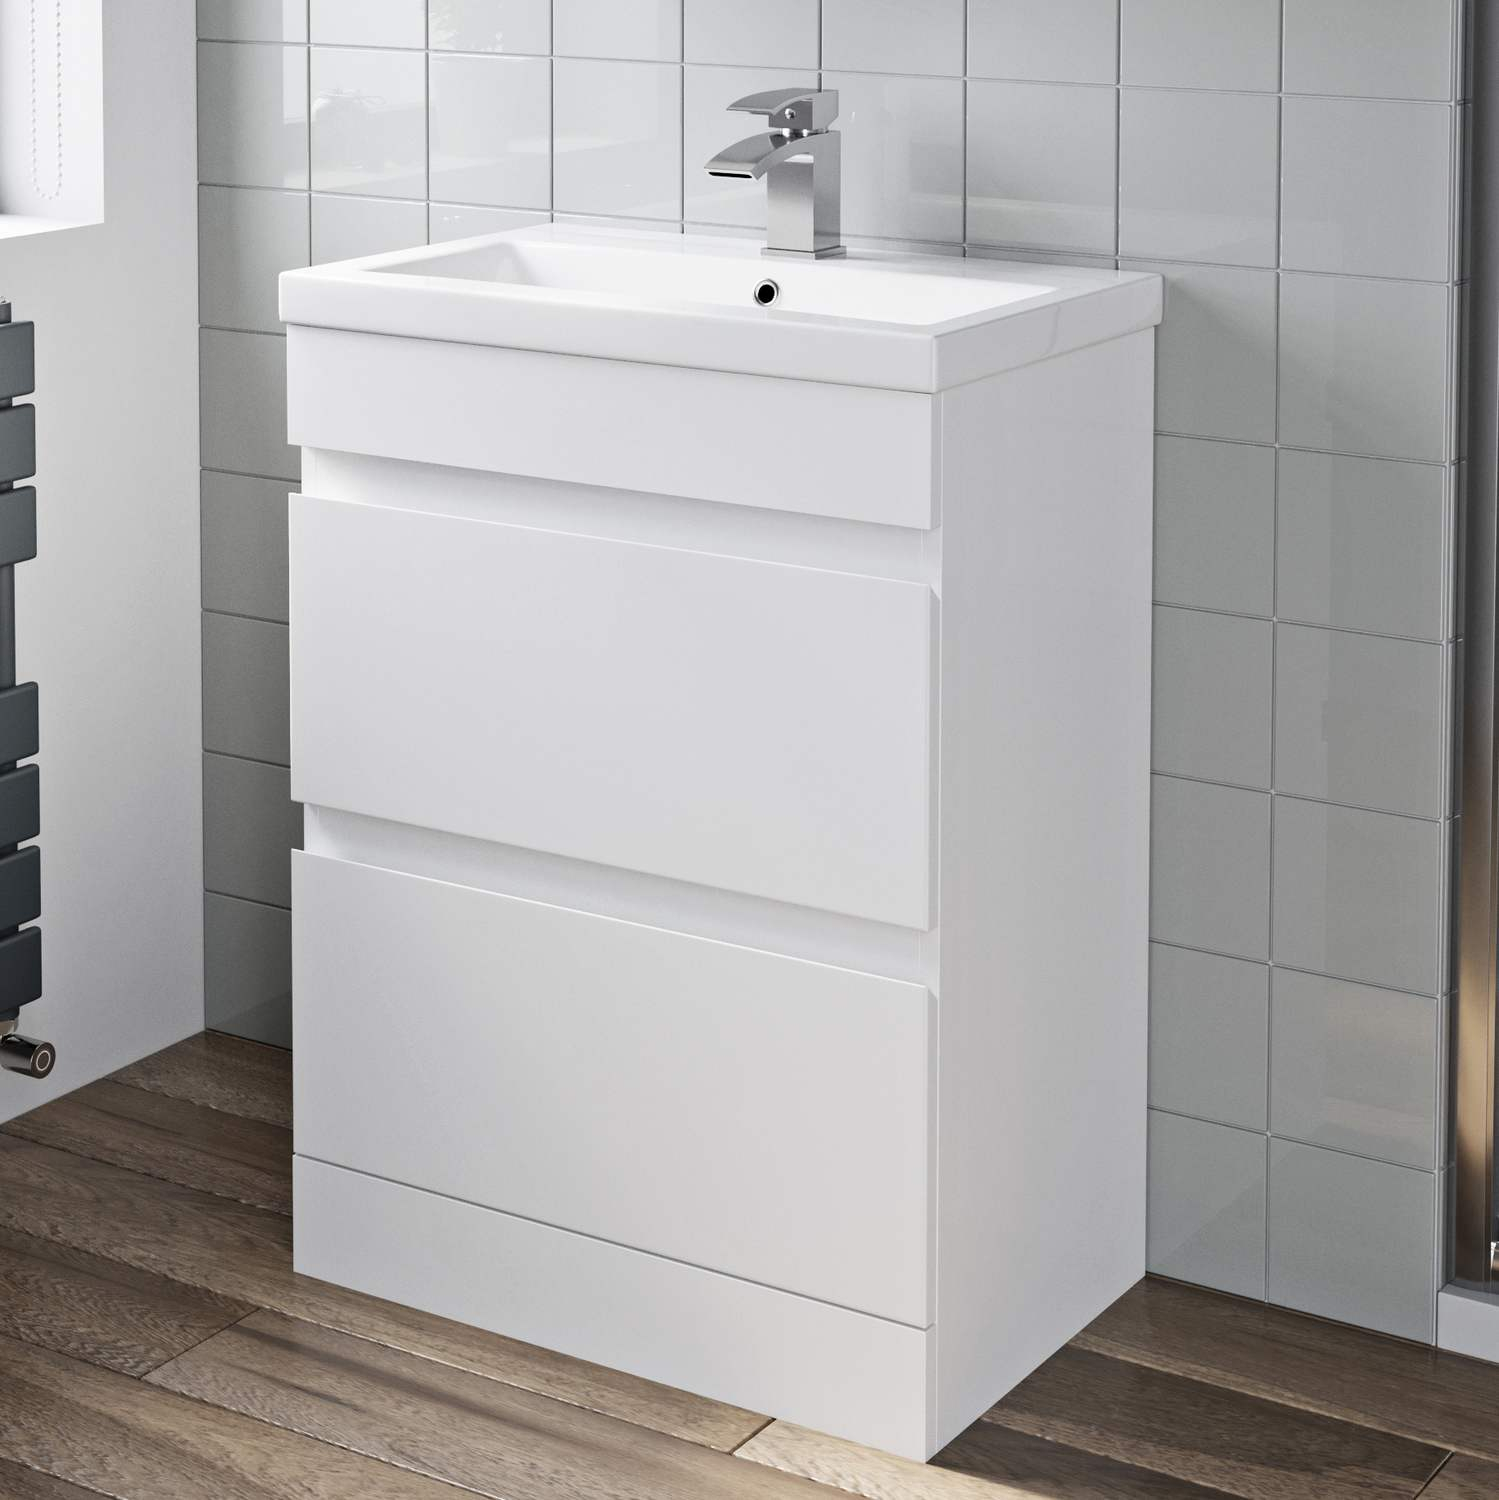 Details About 600mm Bathroom Vanity Unit Basin Storage 2 Drawer Cabinet Furniture White Gloss with measurements 1499 X 1500